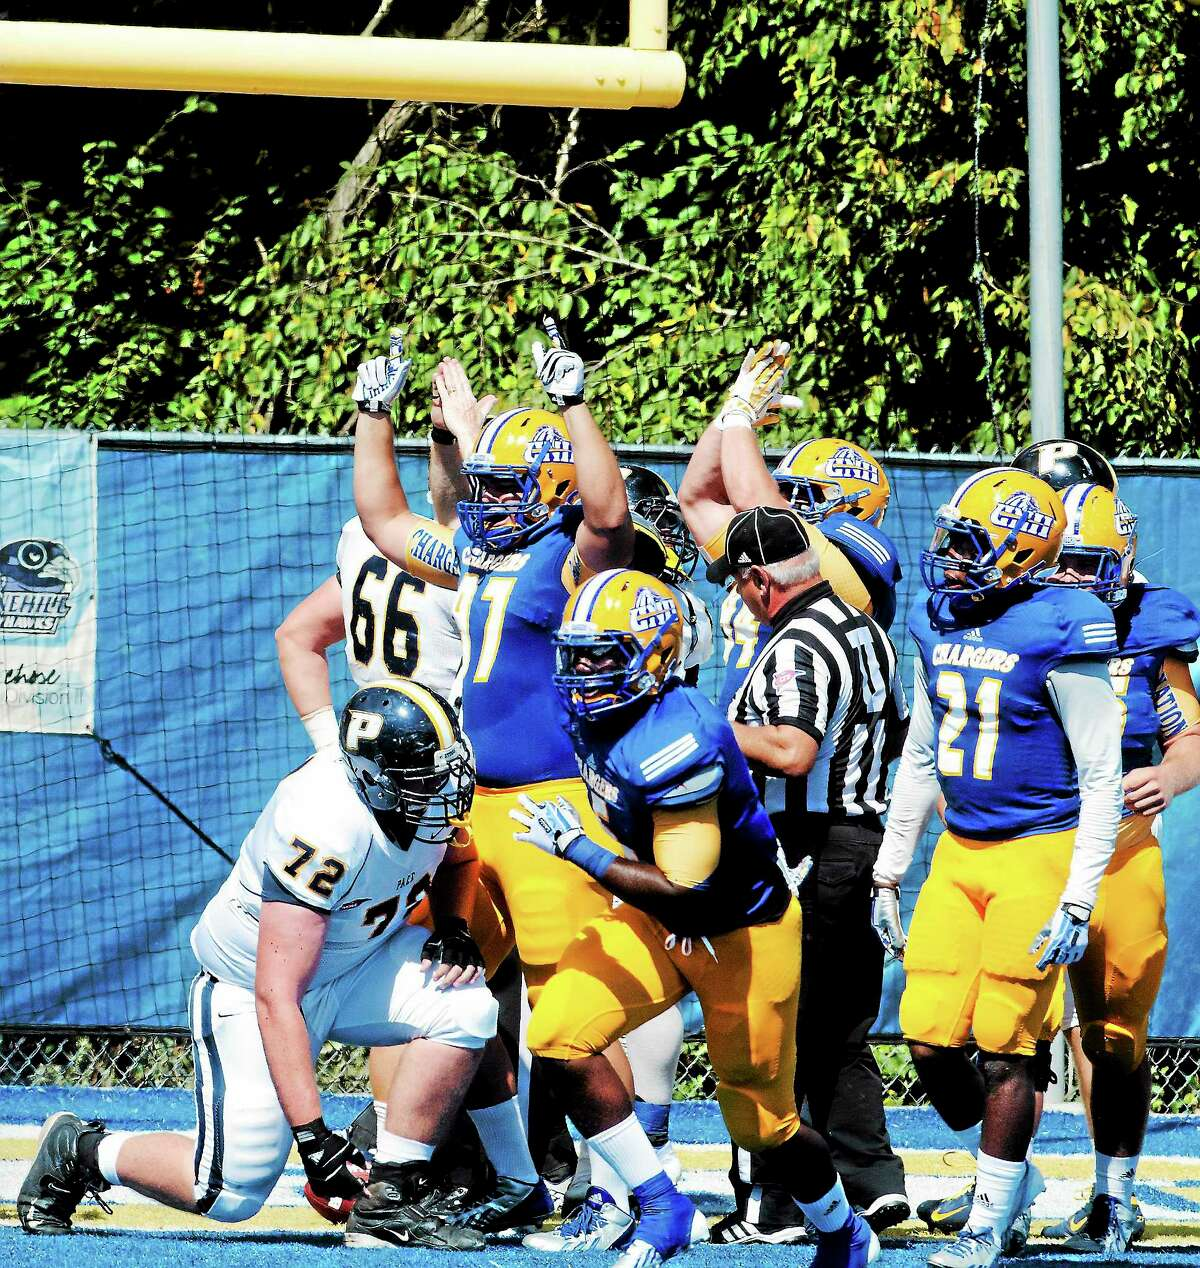 Members of the New Haven football team celebrate after recording a safety agains Pace on Saturday.